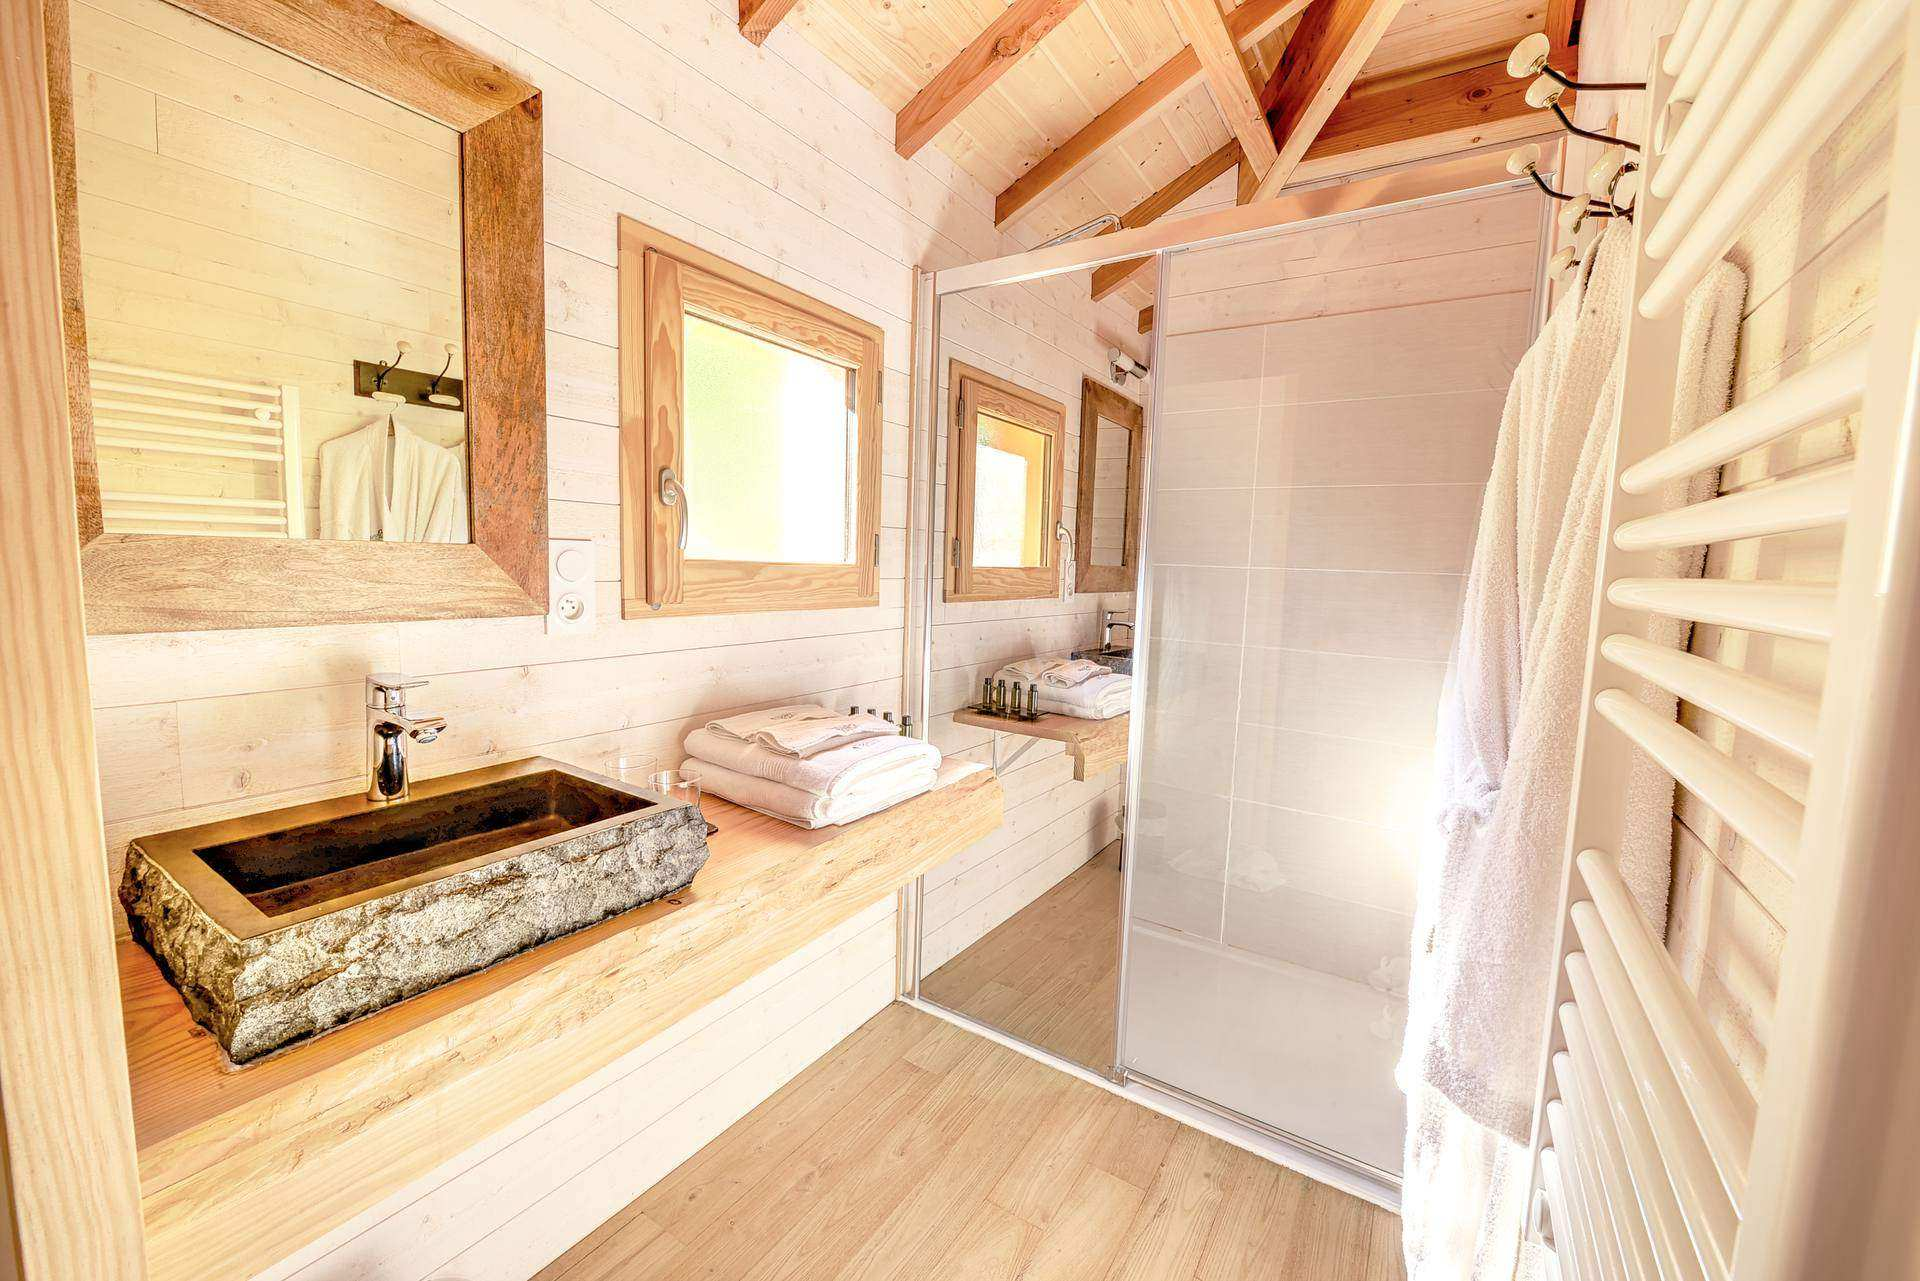 cabane perch e avec spa privatis domaine de la male cabane sur pilotis en midi pyr n es. Black Bedroom Furniture Sets. Home Design Ideas